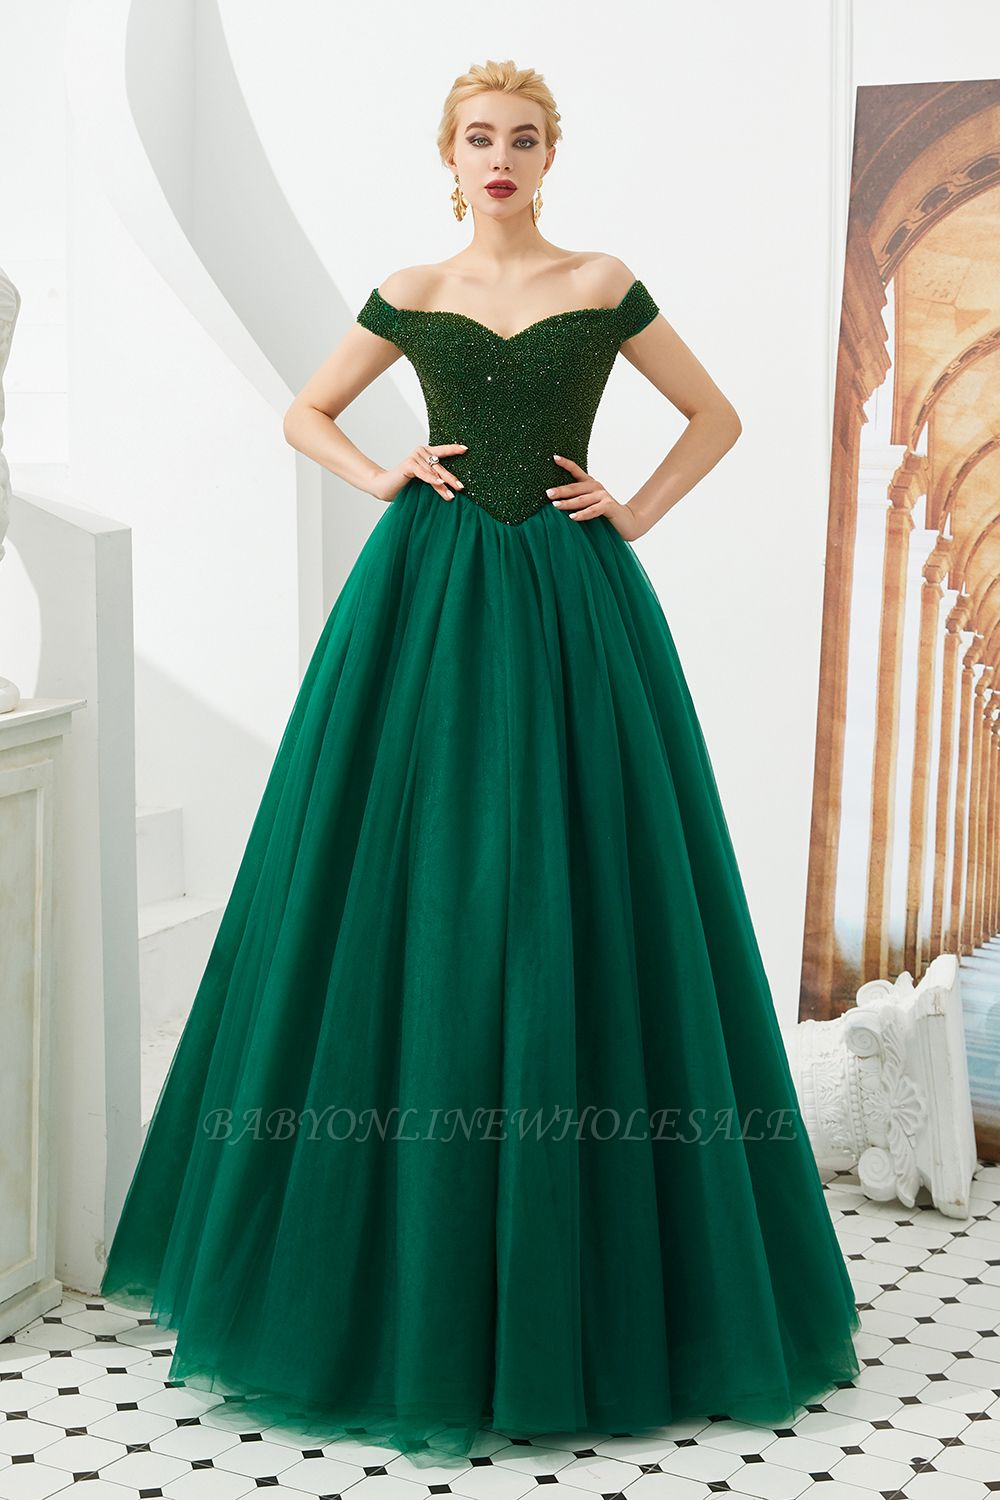 Harry | Elegant Emerald green Off-the-shoulder Ball Gown Dress for Prom/Evening